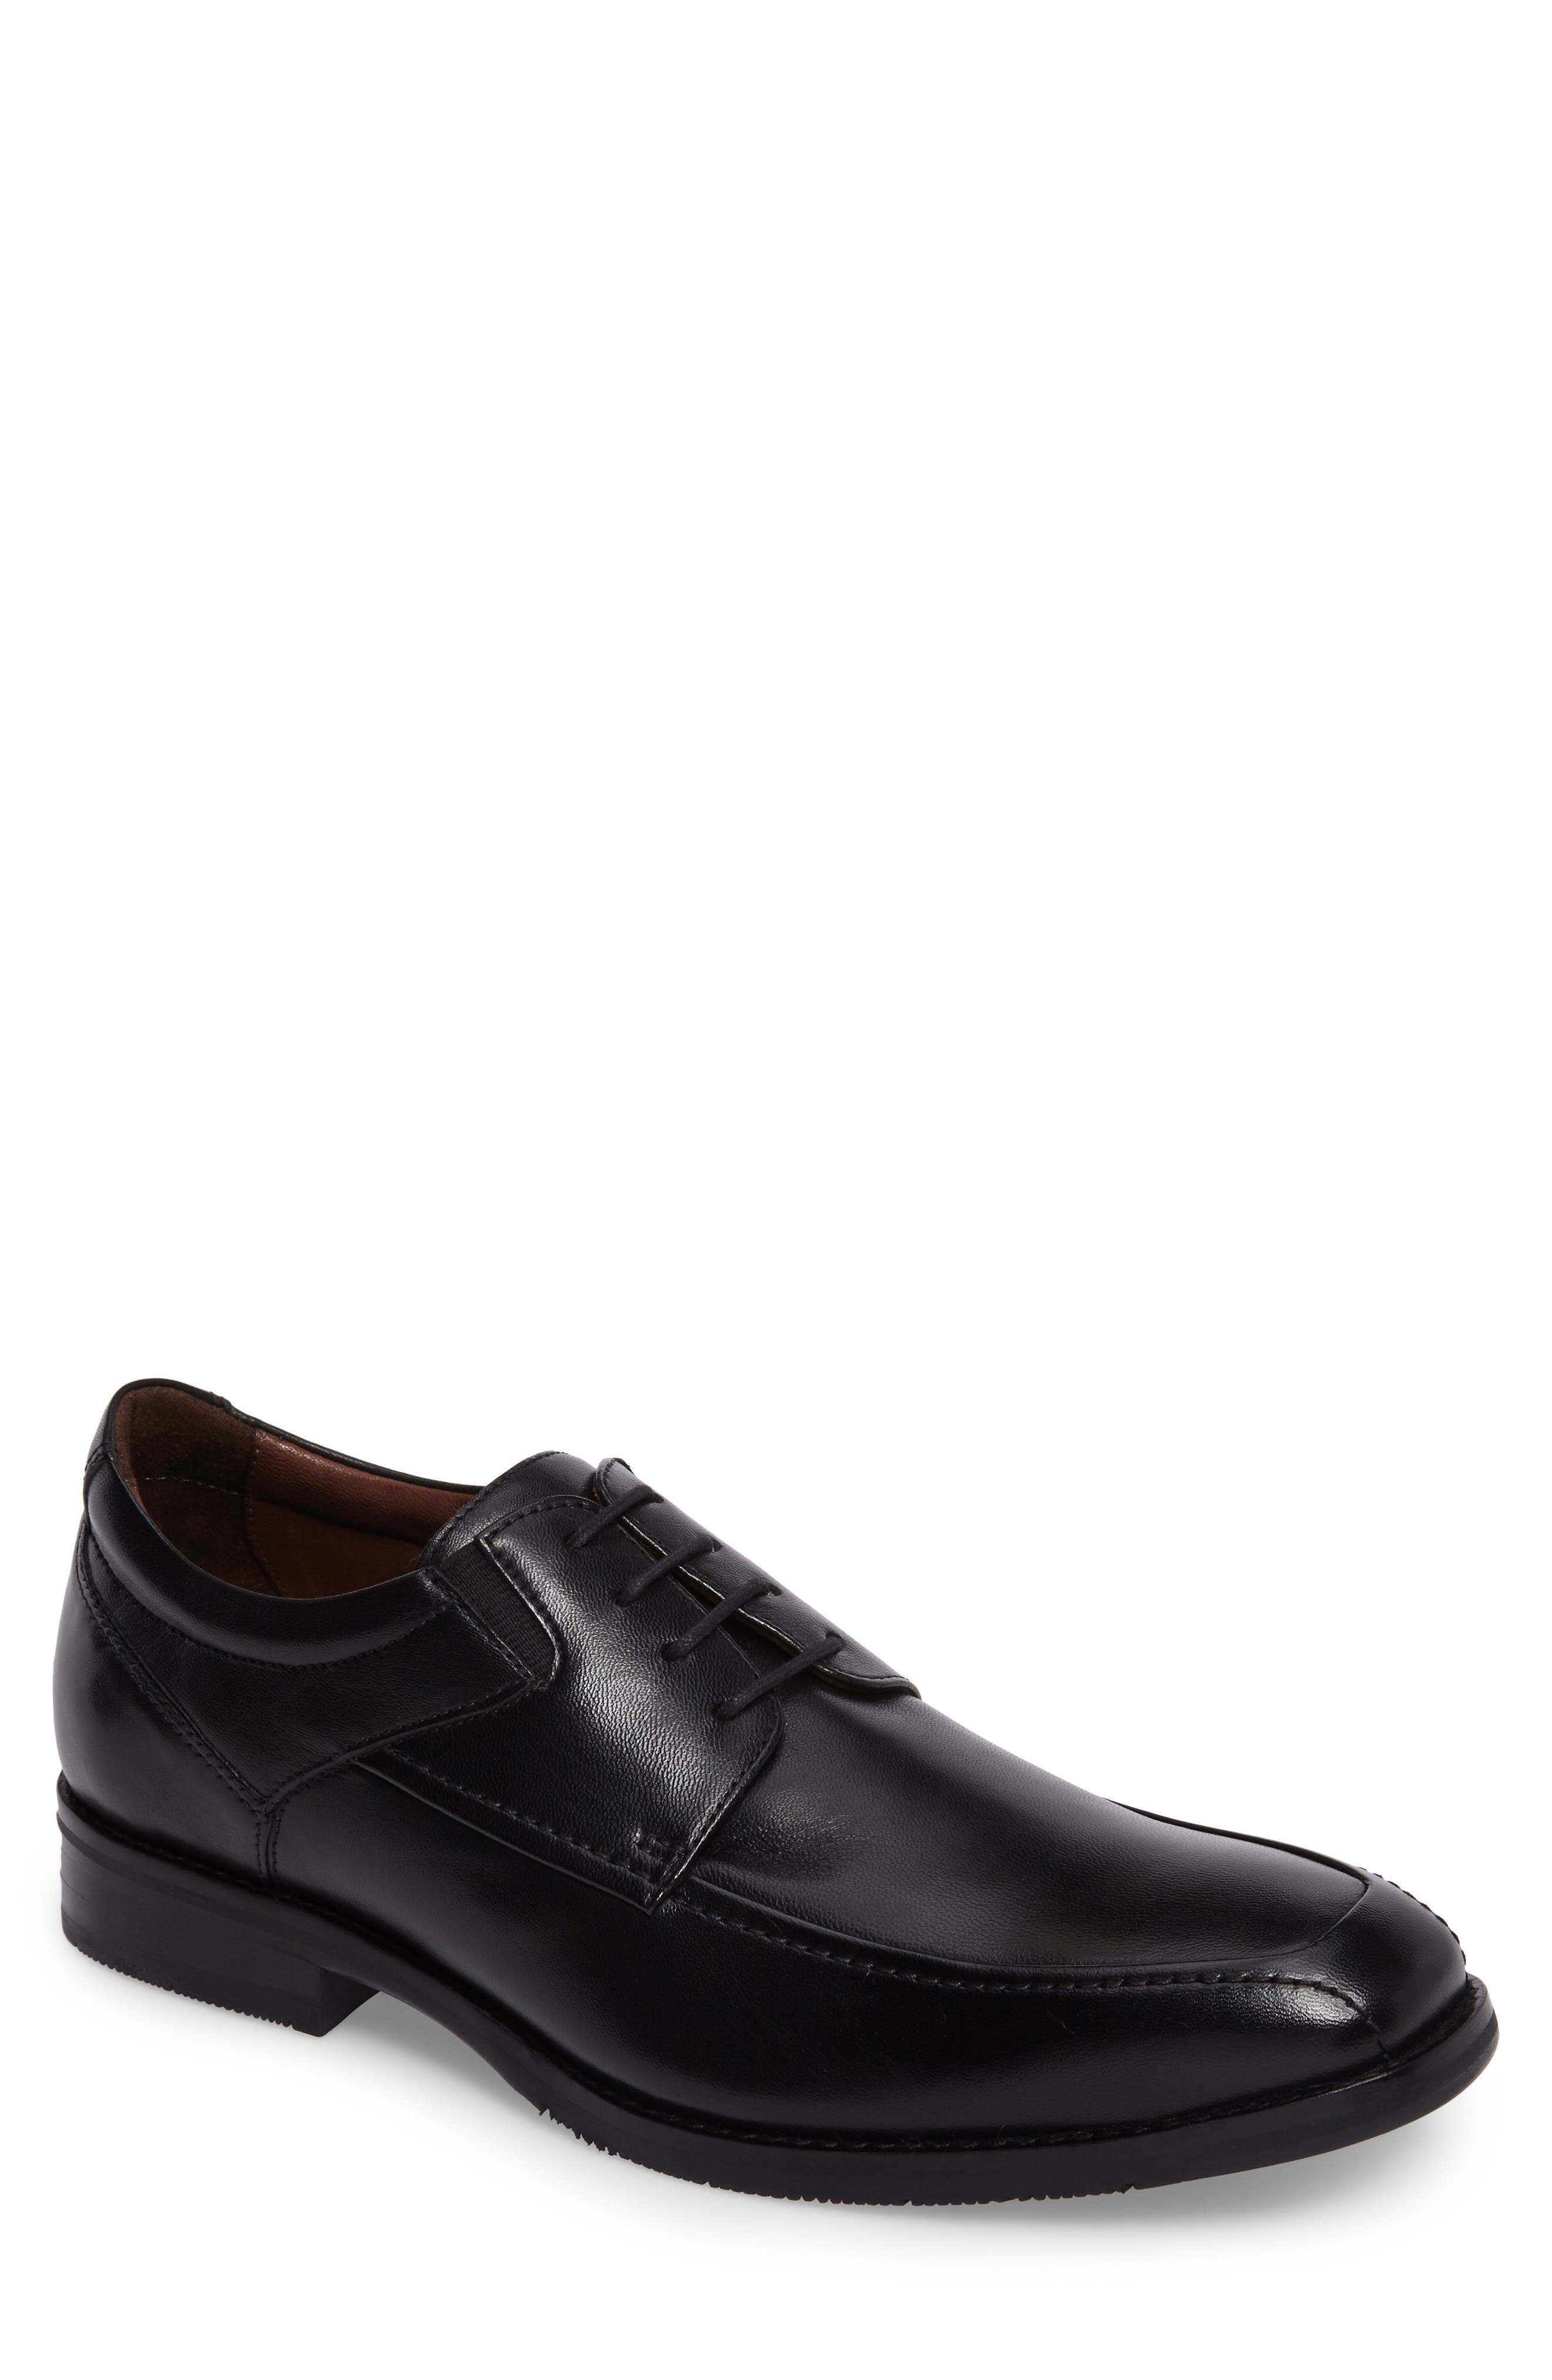 JOHNSTON & MURPHY Apron Toe Derby, Main, color, BLACK